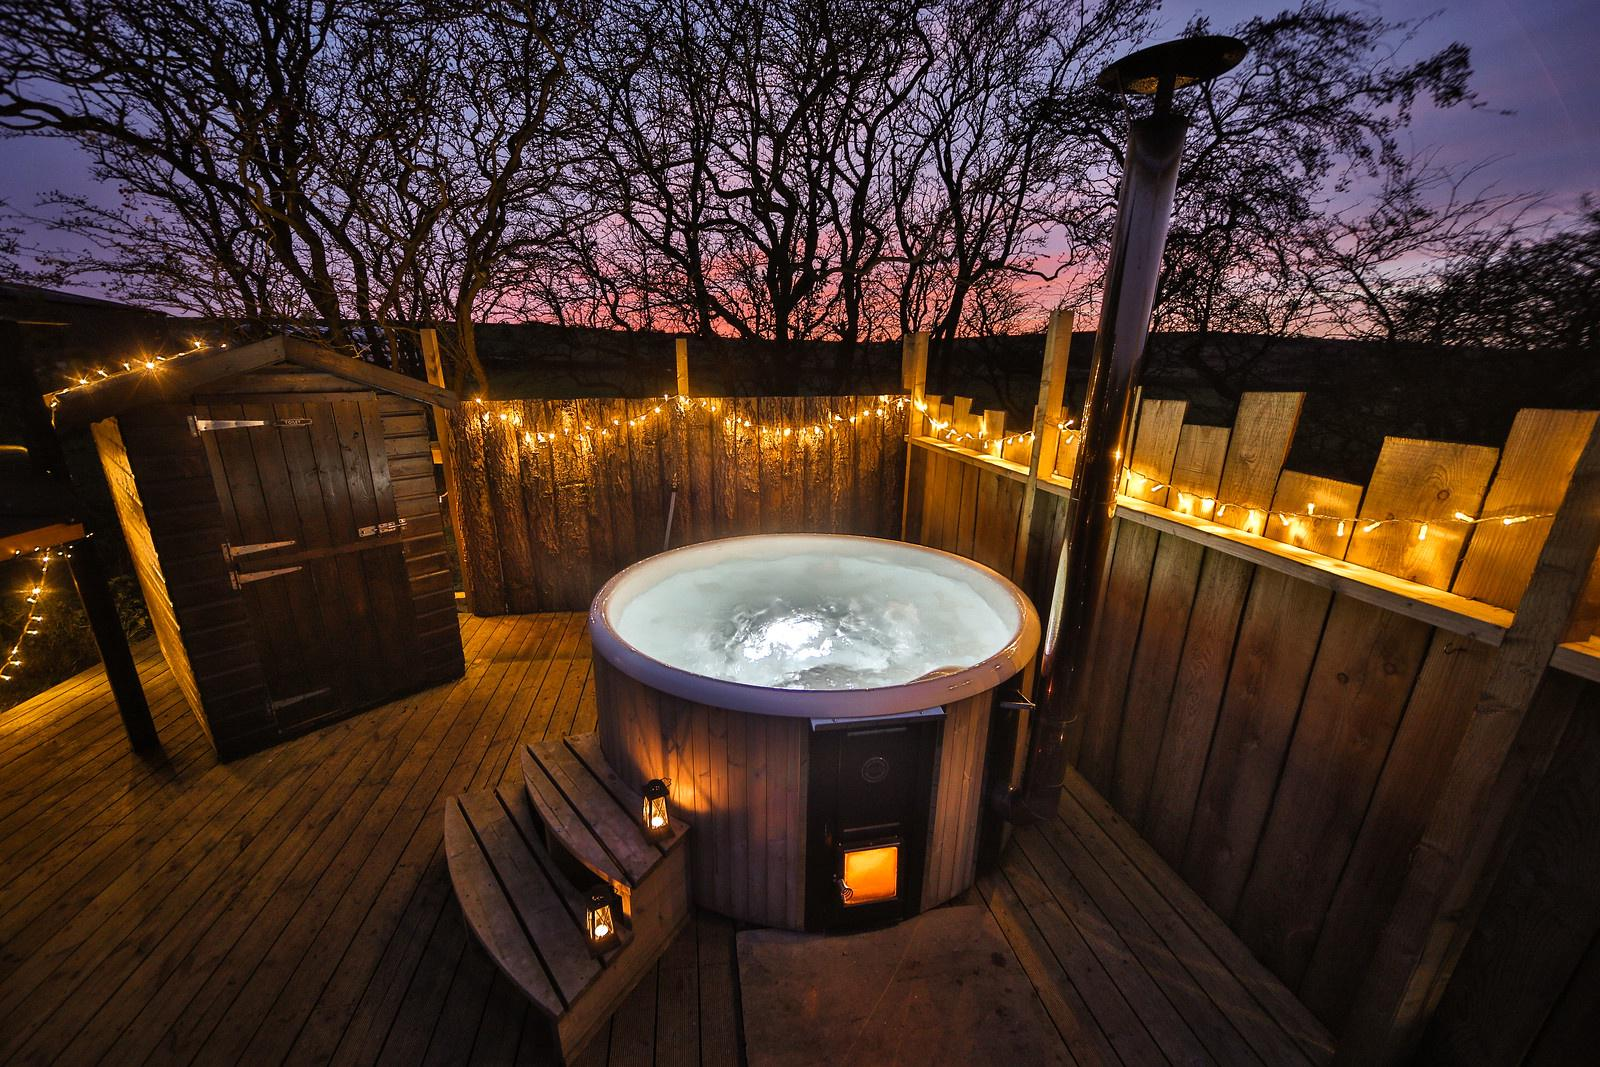 Glamping Sites With Hot Tubs | The Very Best Hot Tub Glamping Sites